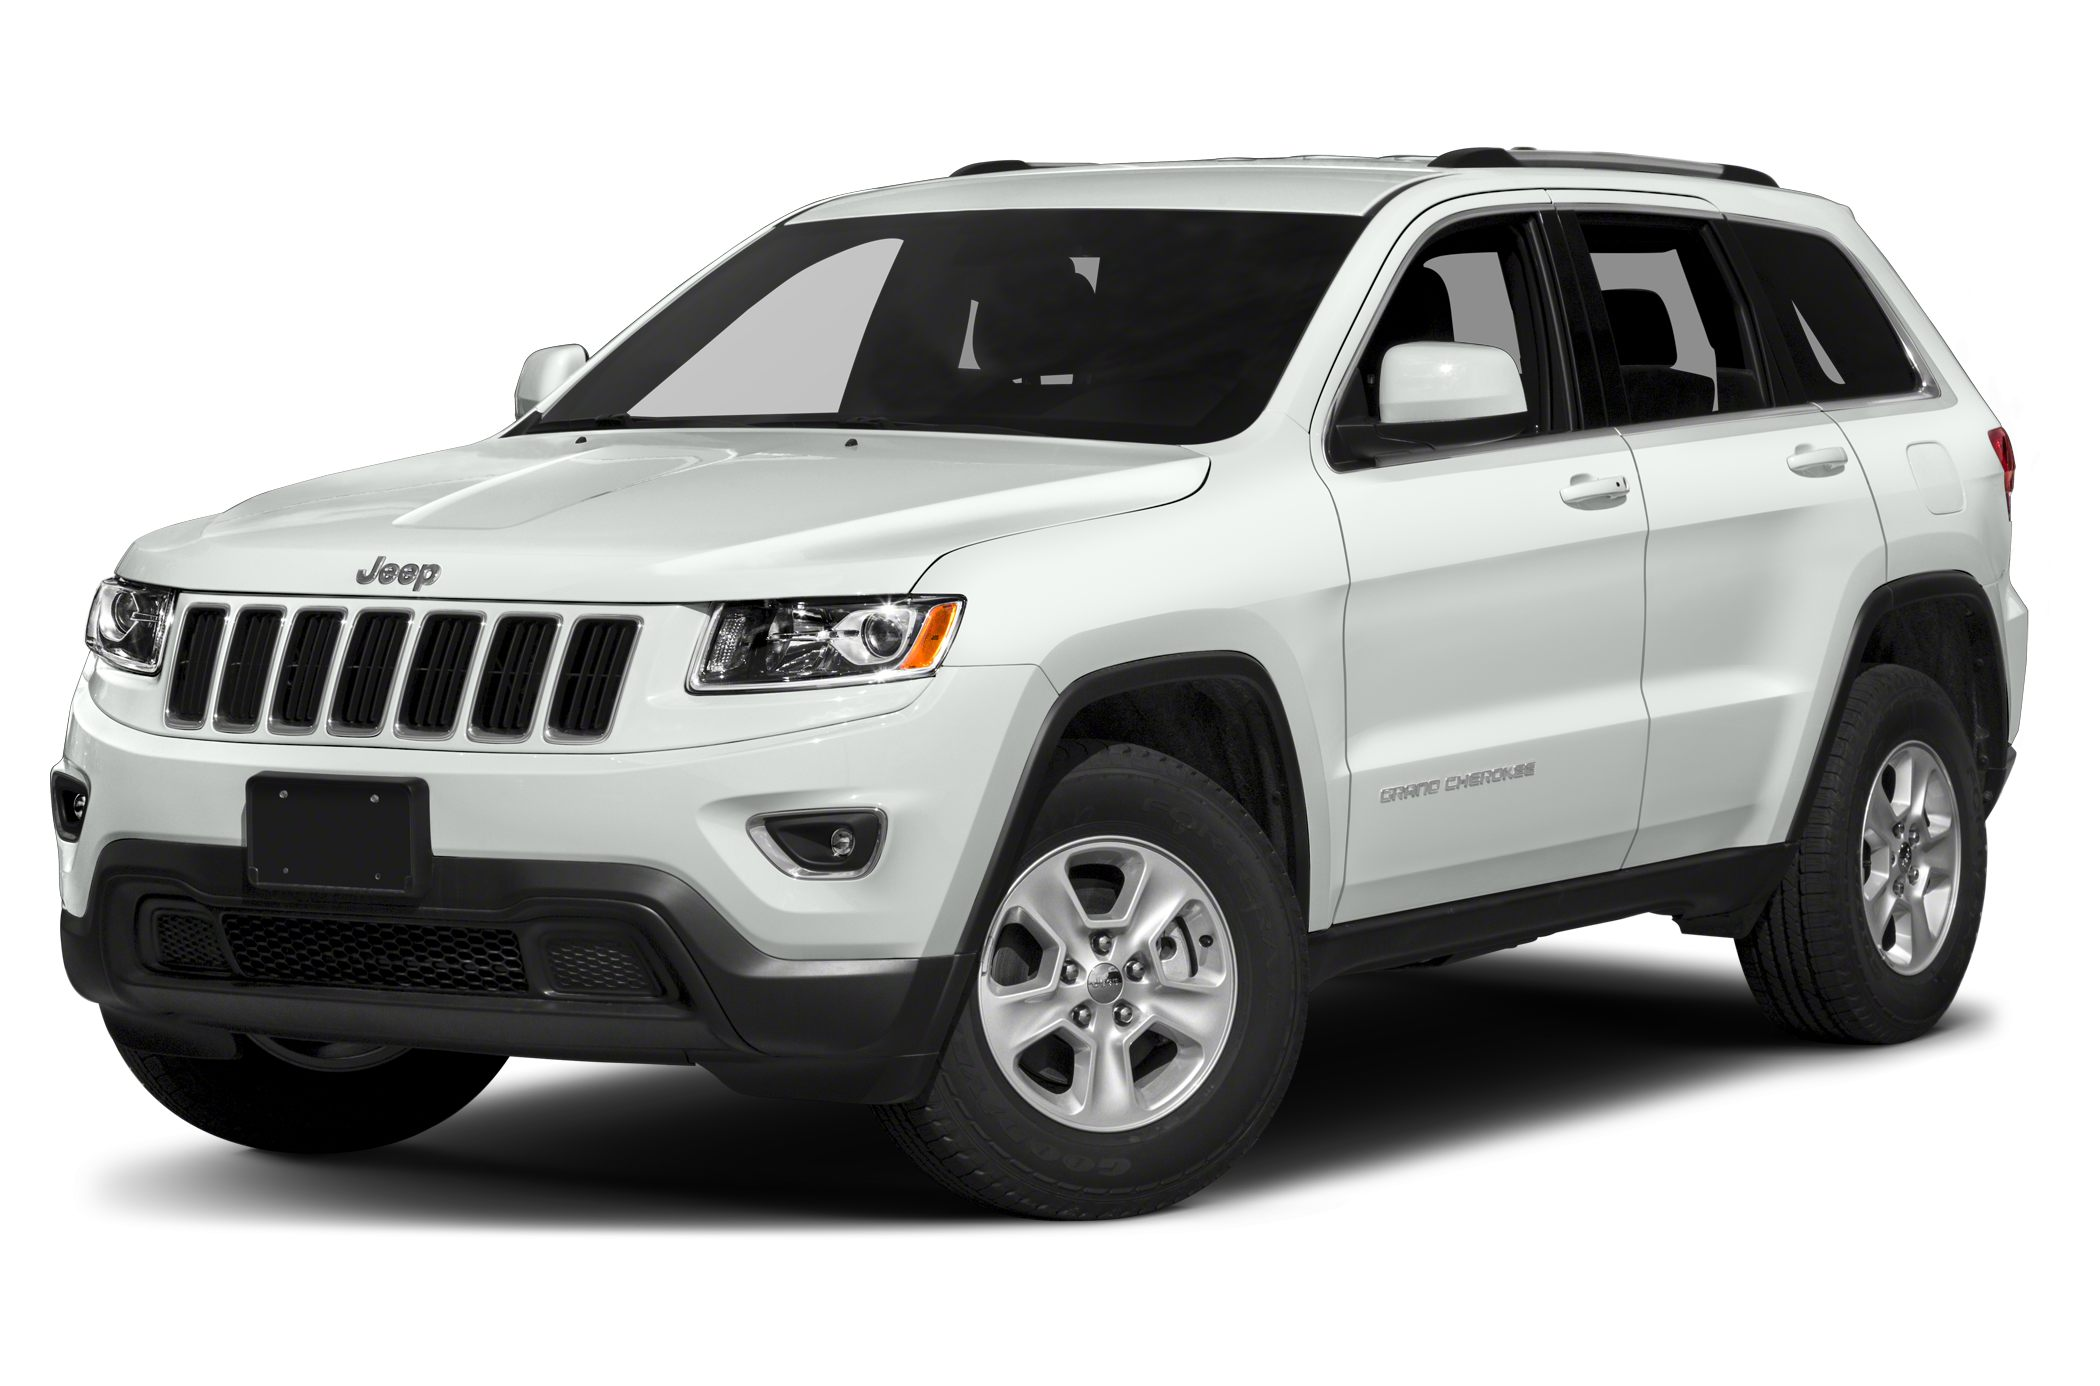 2017 Jeep Grand Cherokee Laredo Flex Fuel Wow Where do I start How enticing is this good-looki